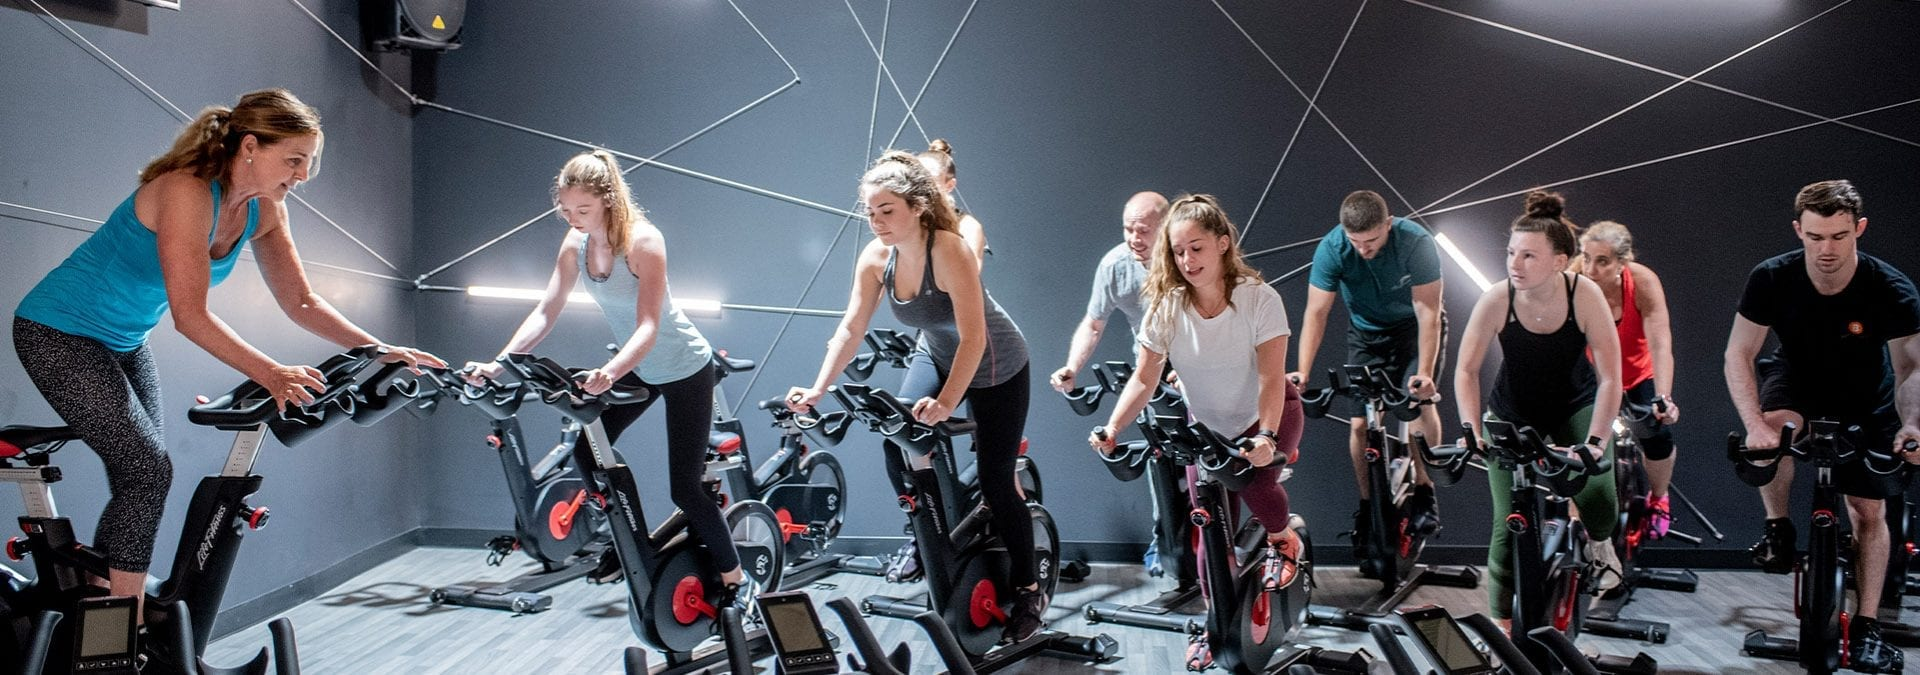 a large group of men and women in a modern and unique group cycle studio exercising in a gym near me